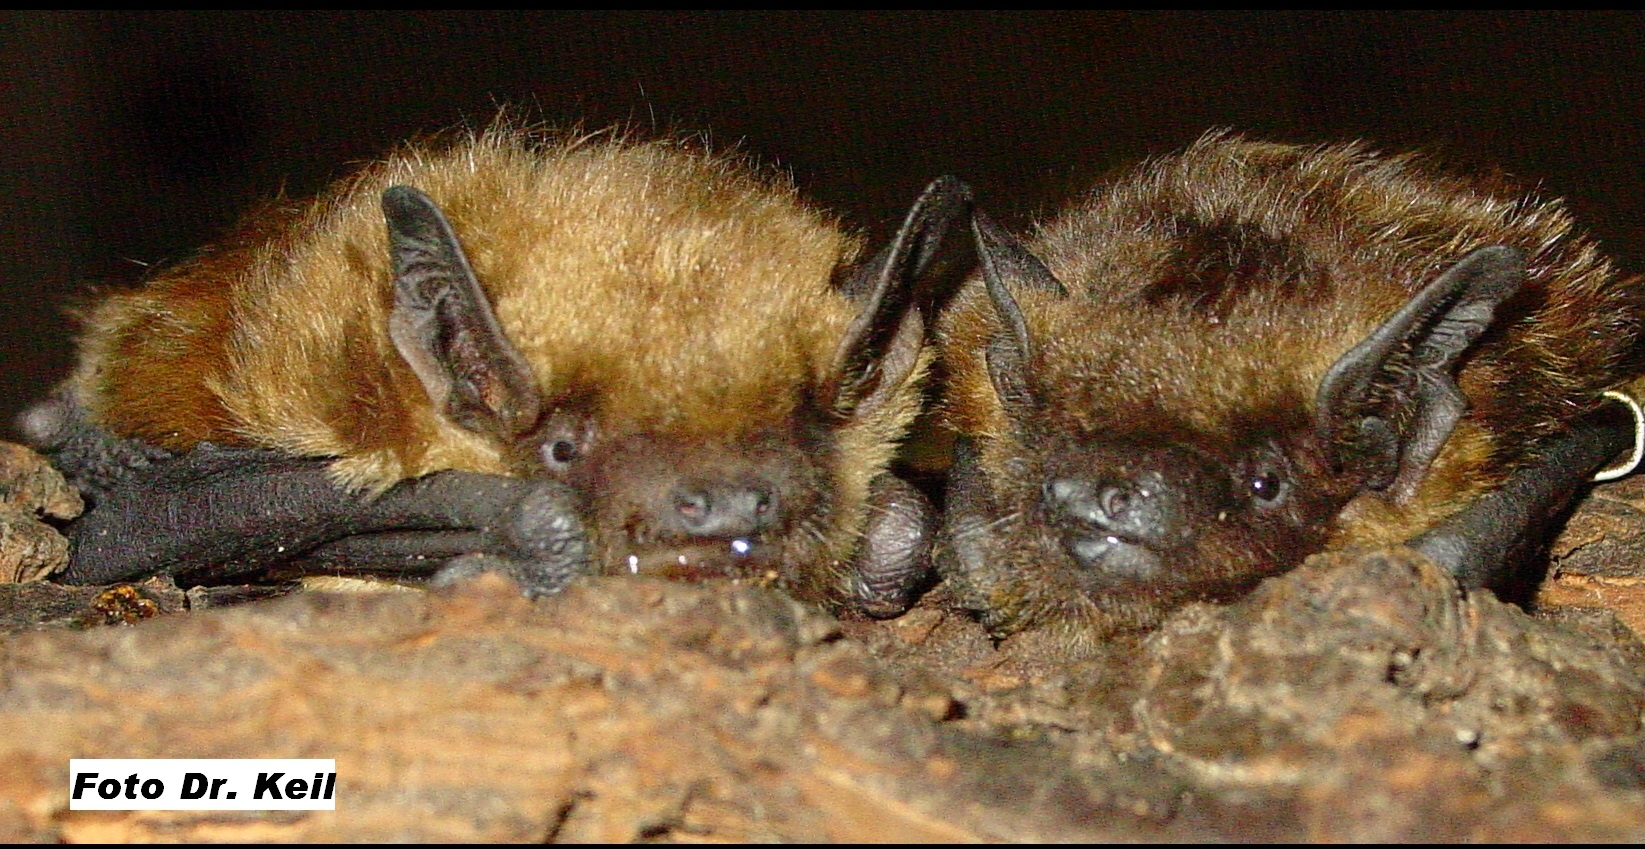 Das Foto zeigt zwei Breitflügelfledermäuse Eptesicus serotinus // The photo shows two bats Eptesicus serotinus